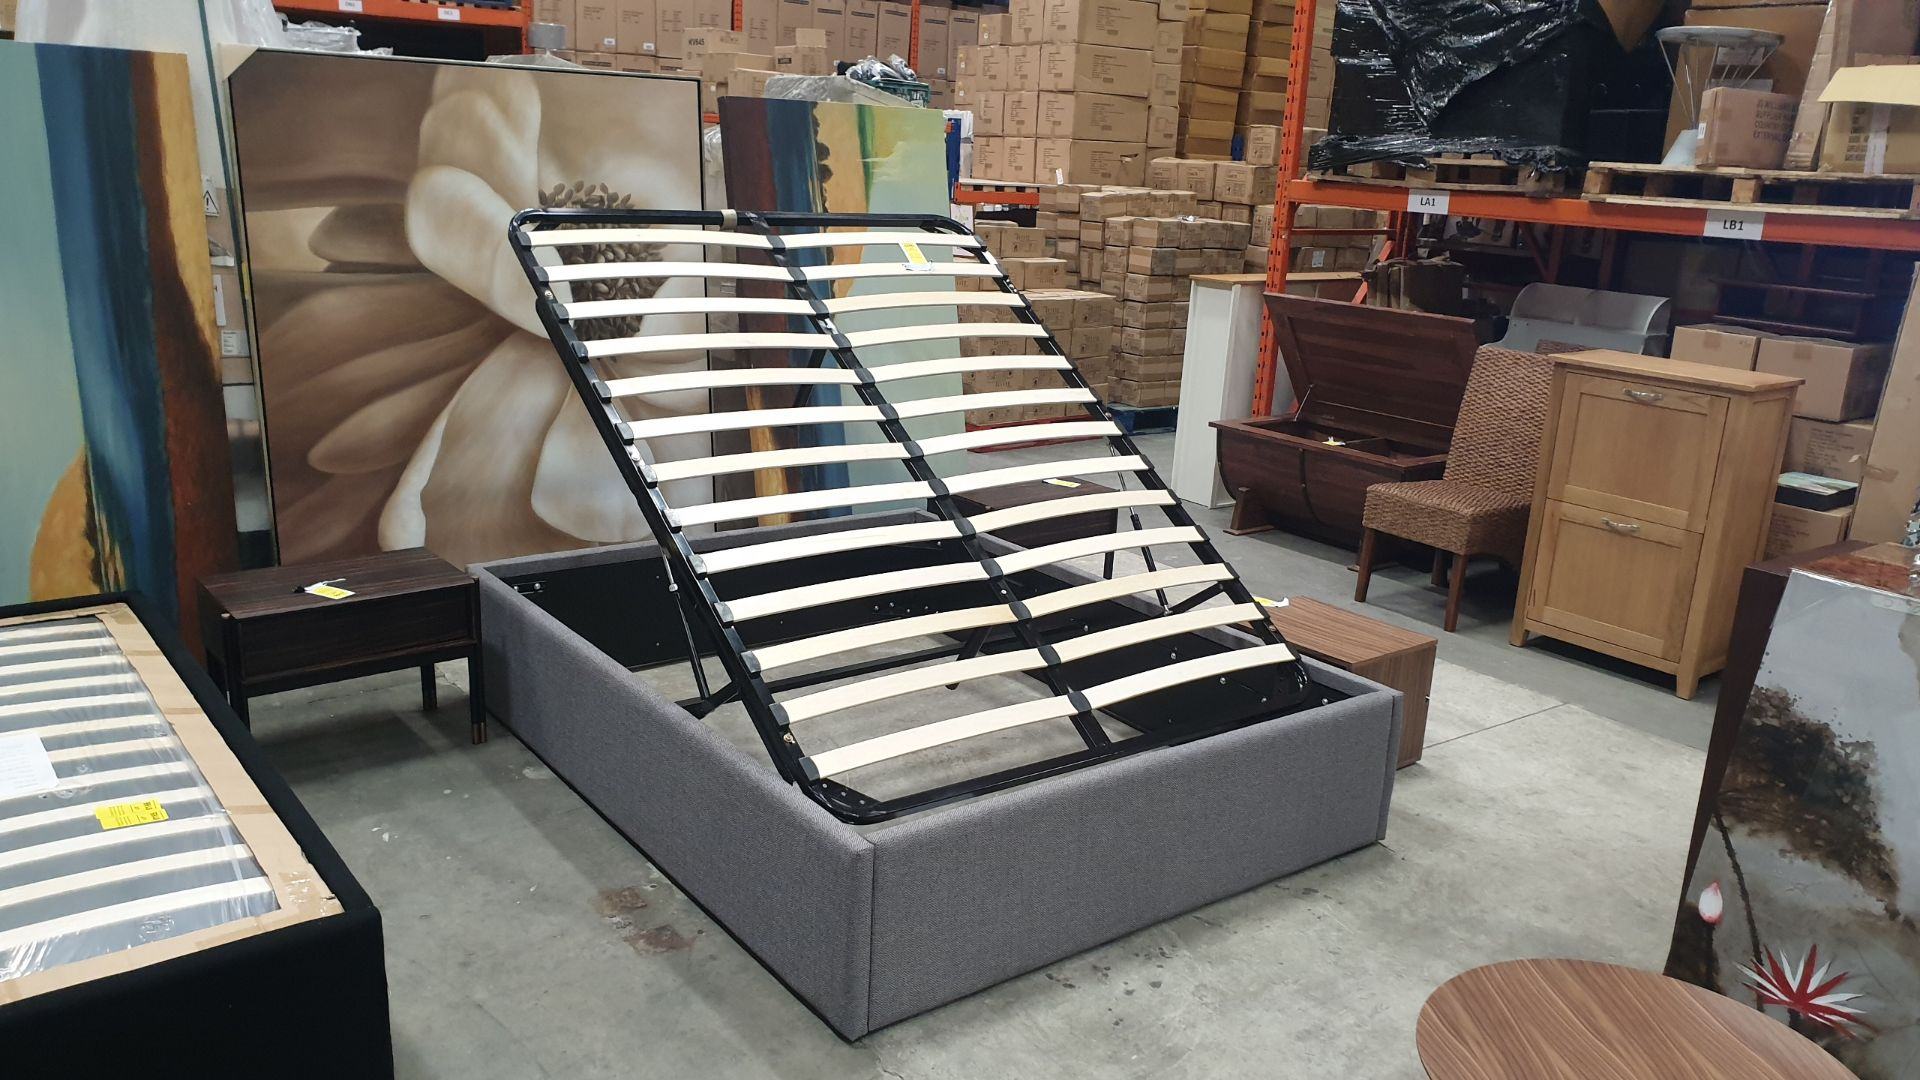 Lot 37 - BRAND NEW HYDRAULIC LIFT STORAGE BED COLOUR KOUSA 1630 X 2130 X 420MM RRP £699